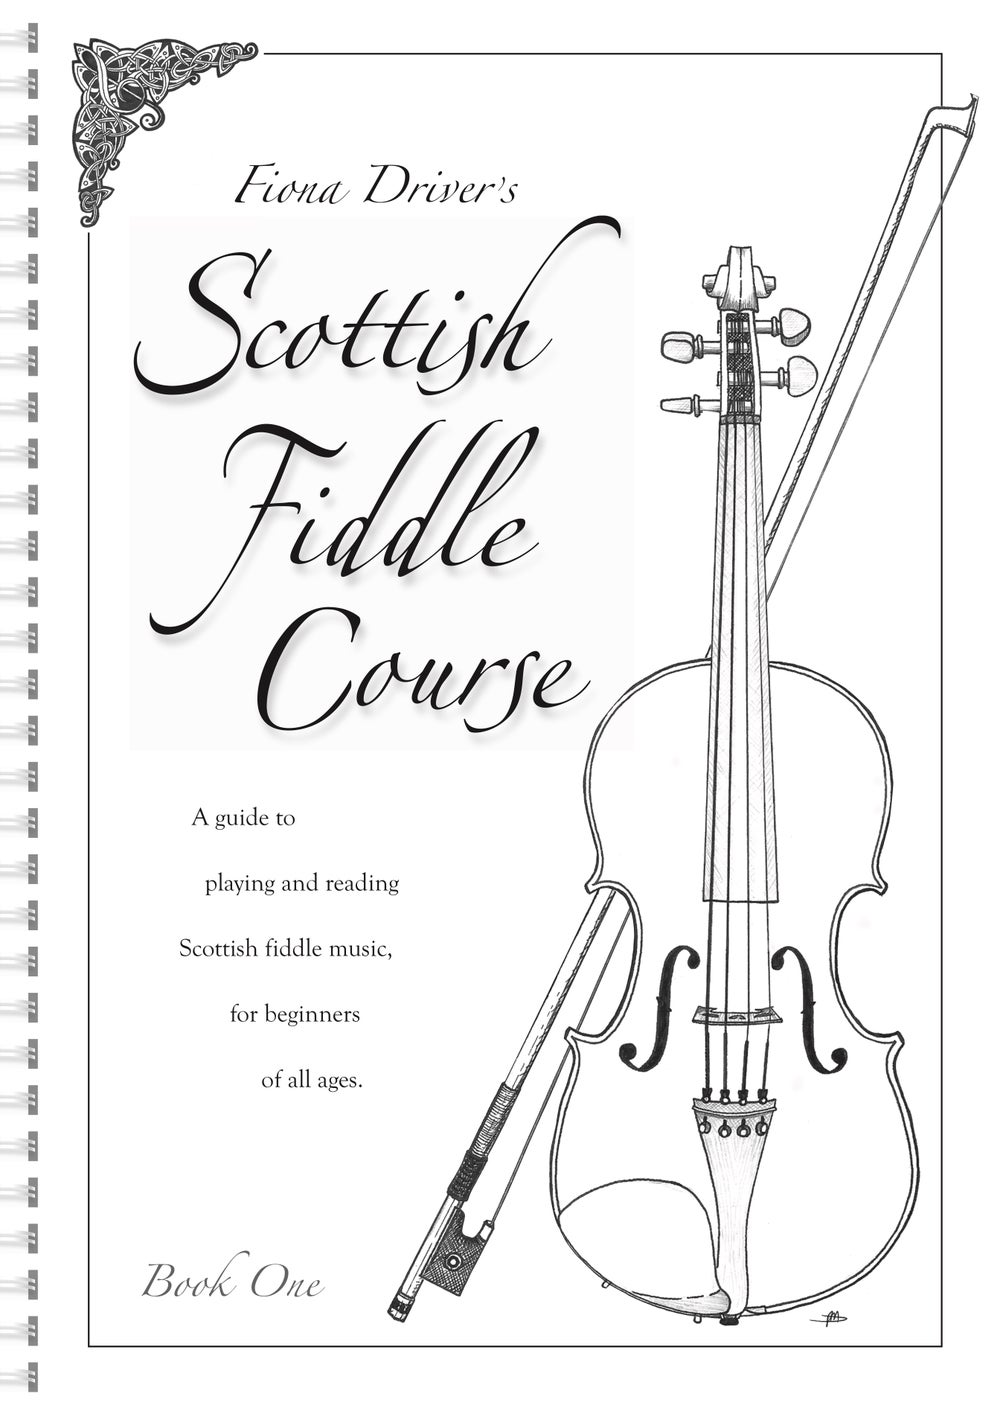 Image of Fiona Drivers Scottish Fiddle Course - book and 41 track CD (DOWNLOAD ALSO AVAILABLE)